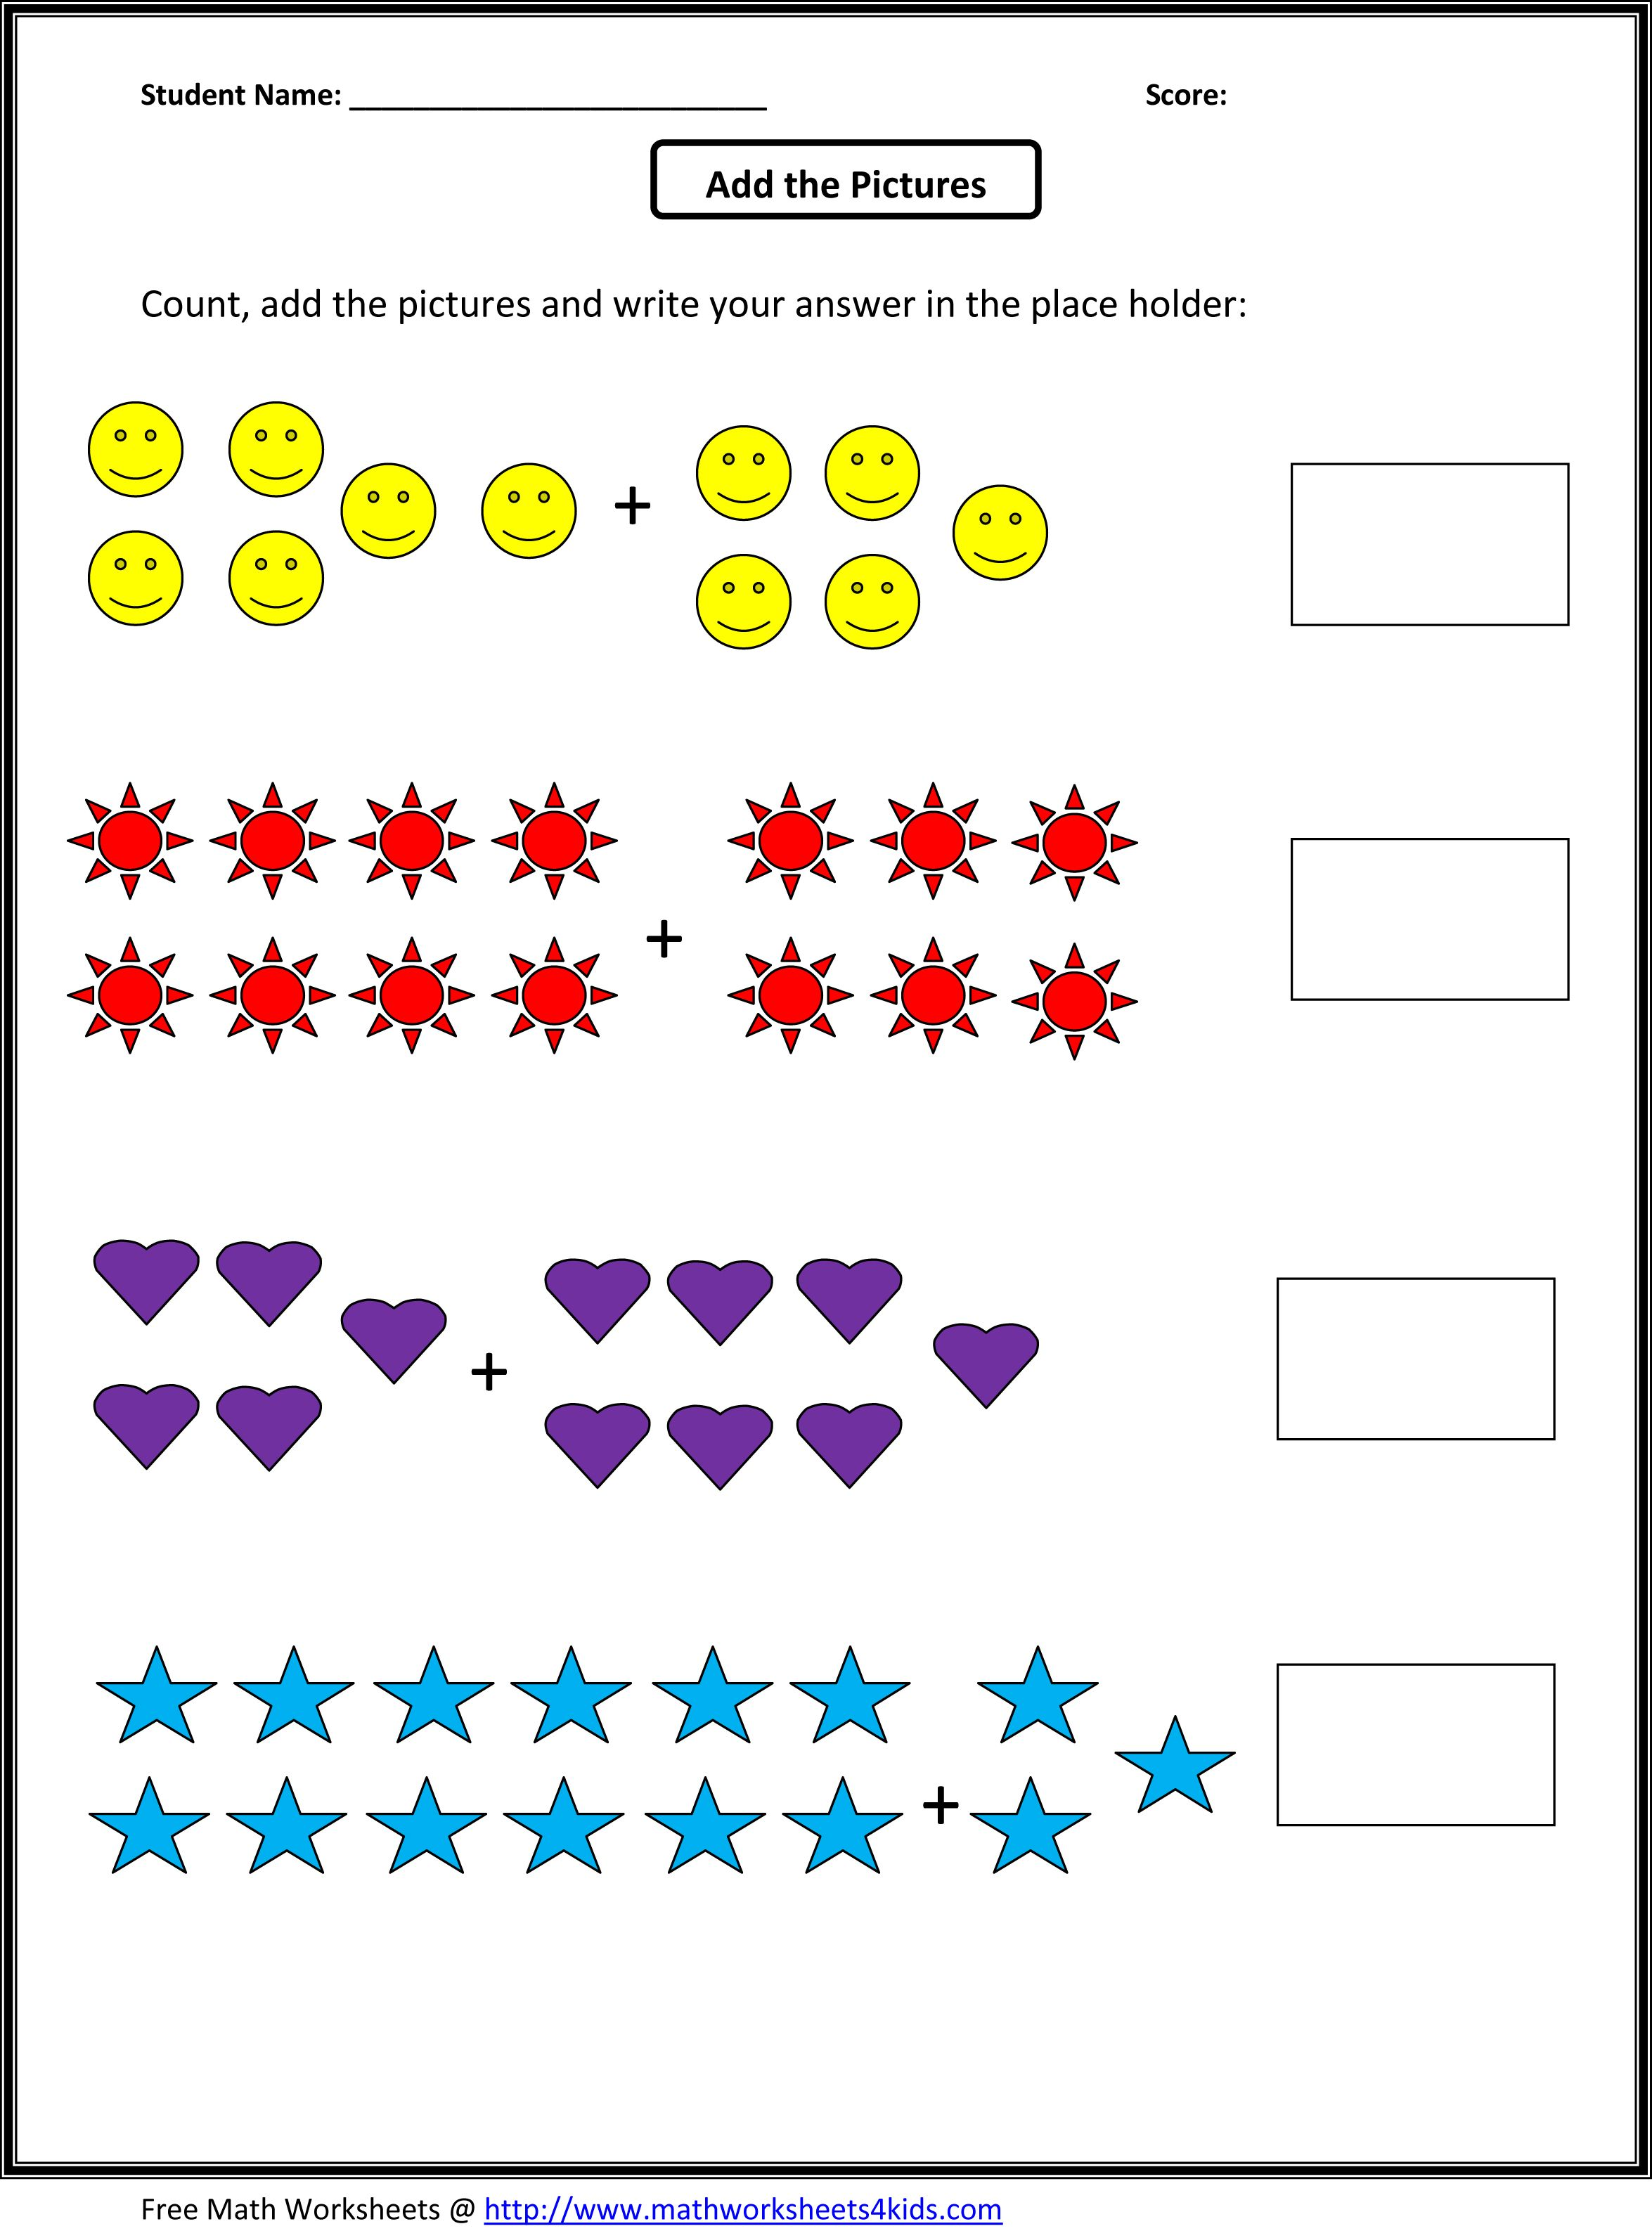 grade 1 addition math worksheets | First Grade Math ...